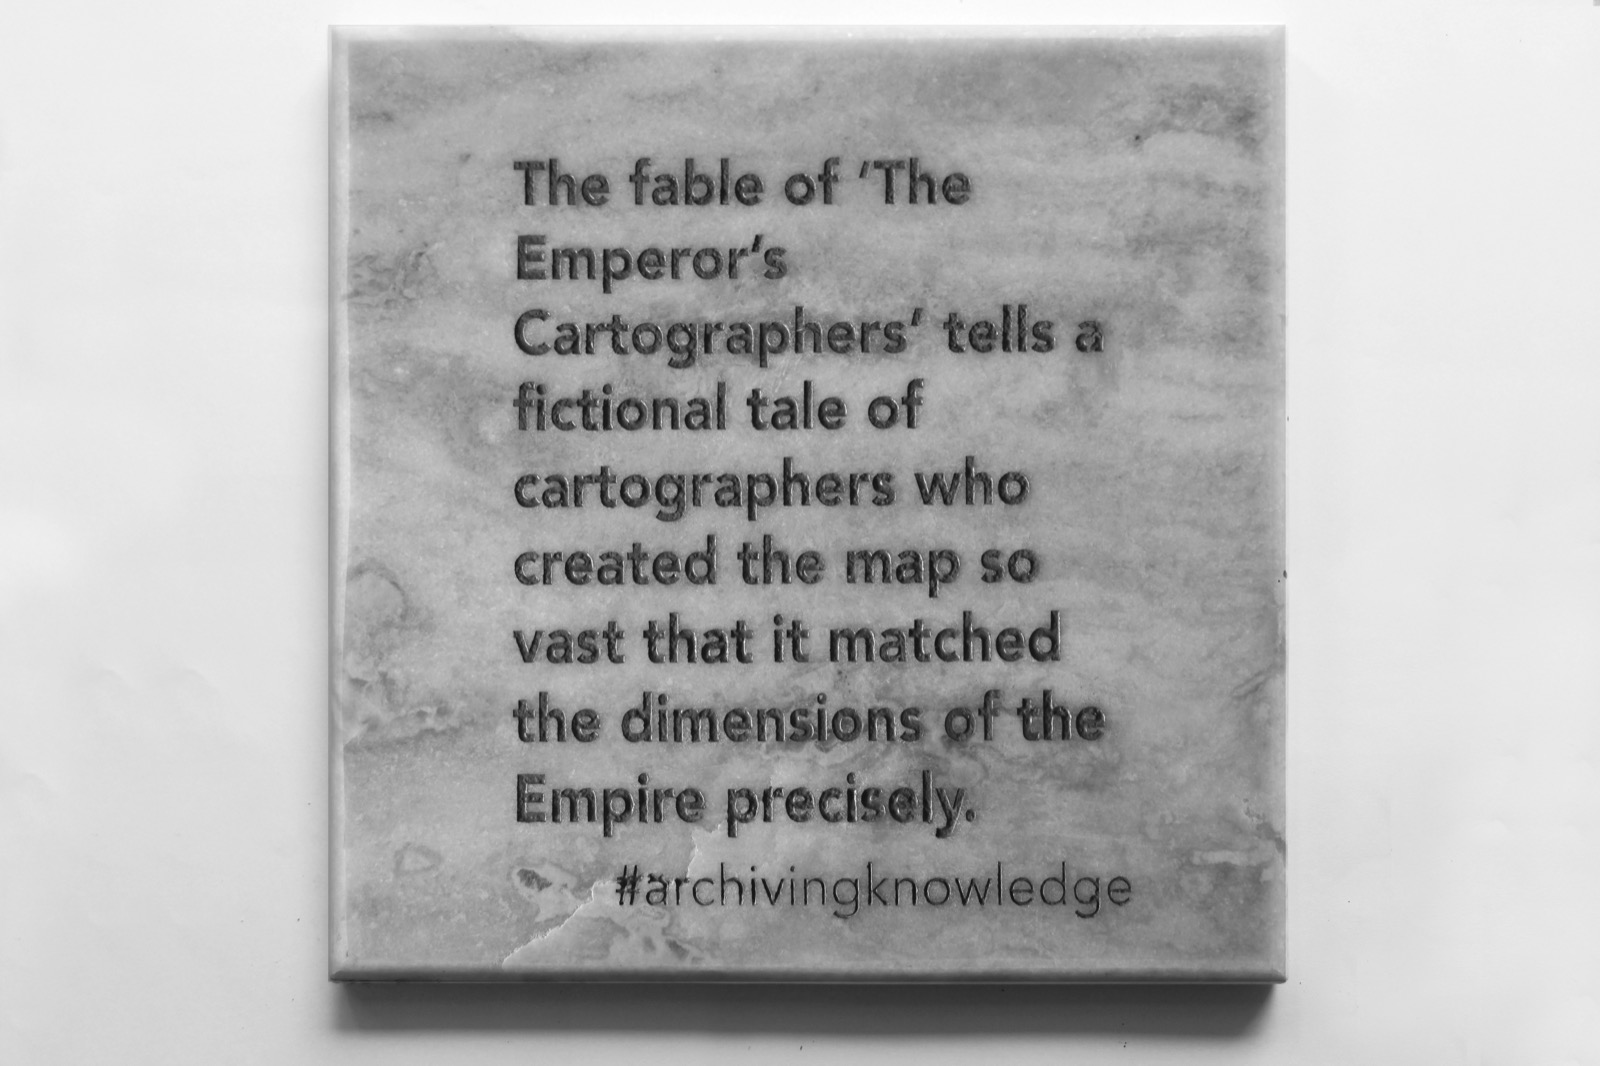 The fable of 'The Emperor's Cartographers' tells a fictional tale of cartographers who created the map so vast that it matched the dimensions of the empire precisely, From the series: Archiving Knowledge, hand engraved marble, 2018